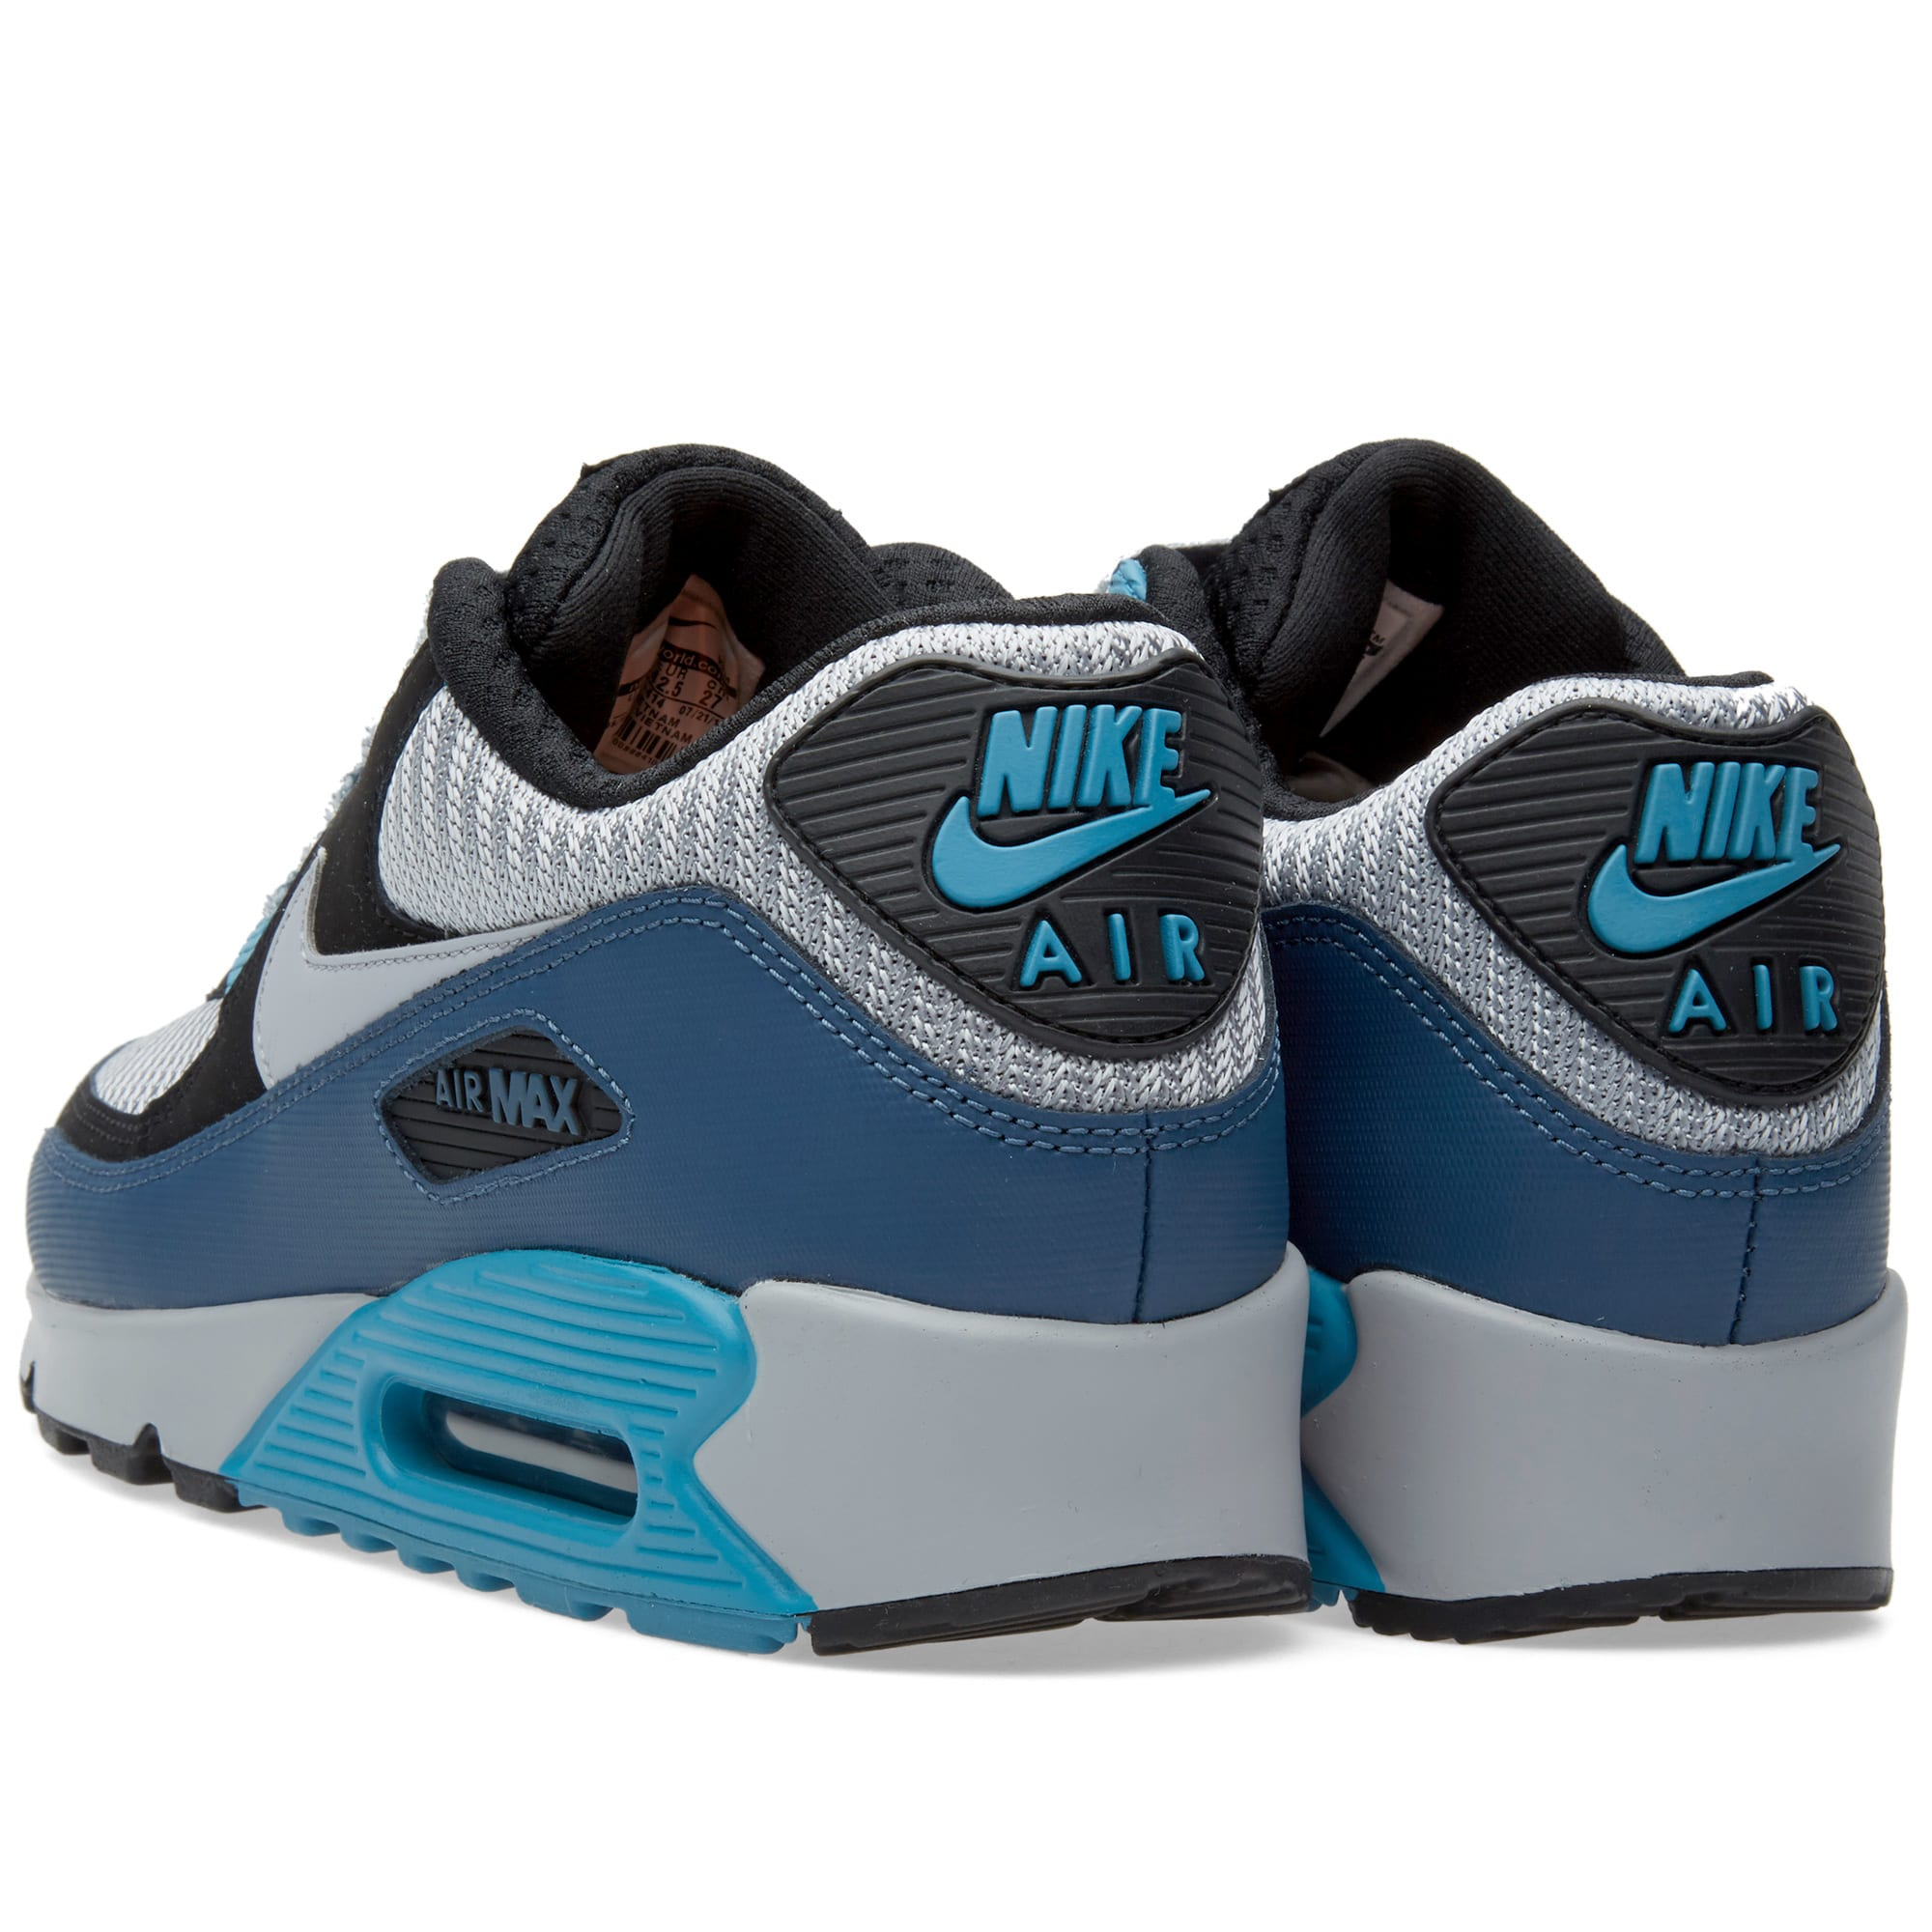 Nike Air Max 90 Essential 537384 031 Grey Squadron Blue